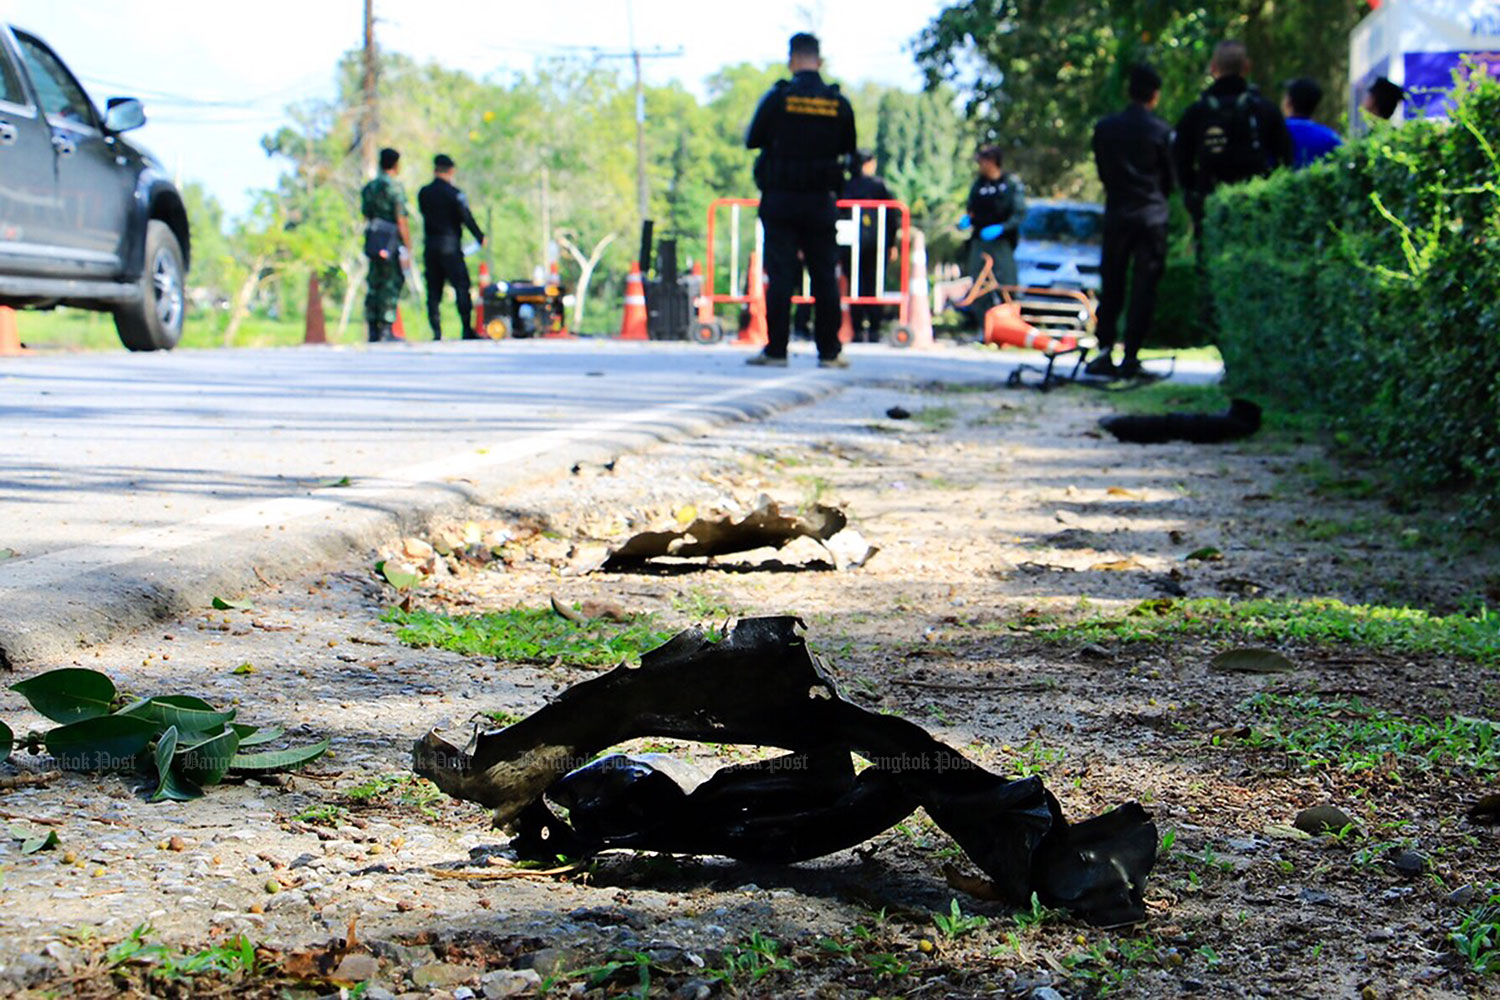 Two suspect rebels were killed during an exchange of gunfire in Pattani. (Bangkok Post file photo)